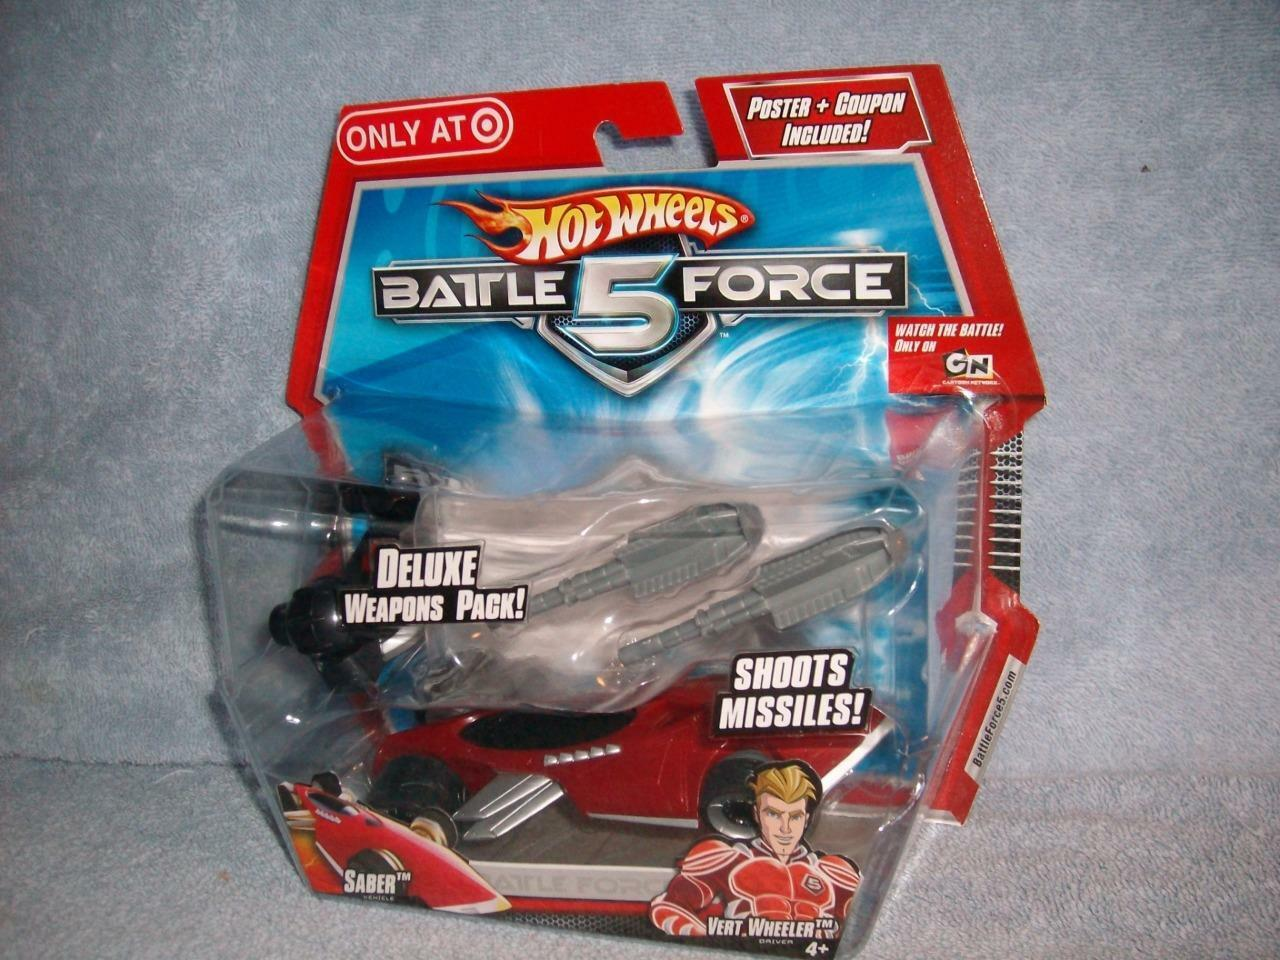 Saber verde Wheeler Hot Wheels Battle Force 5 Exclusive Target Weapons 2009 New